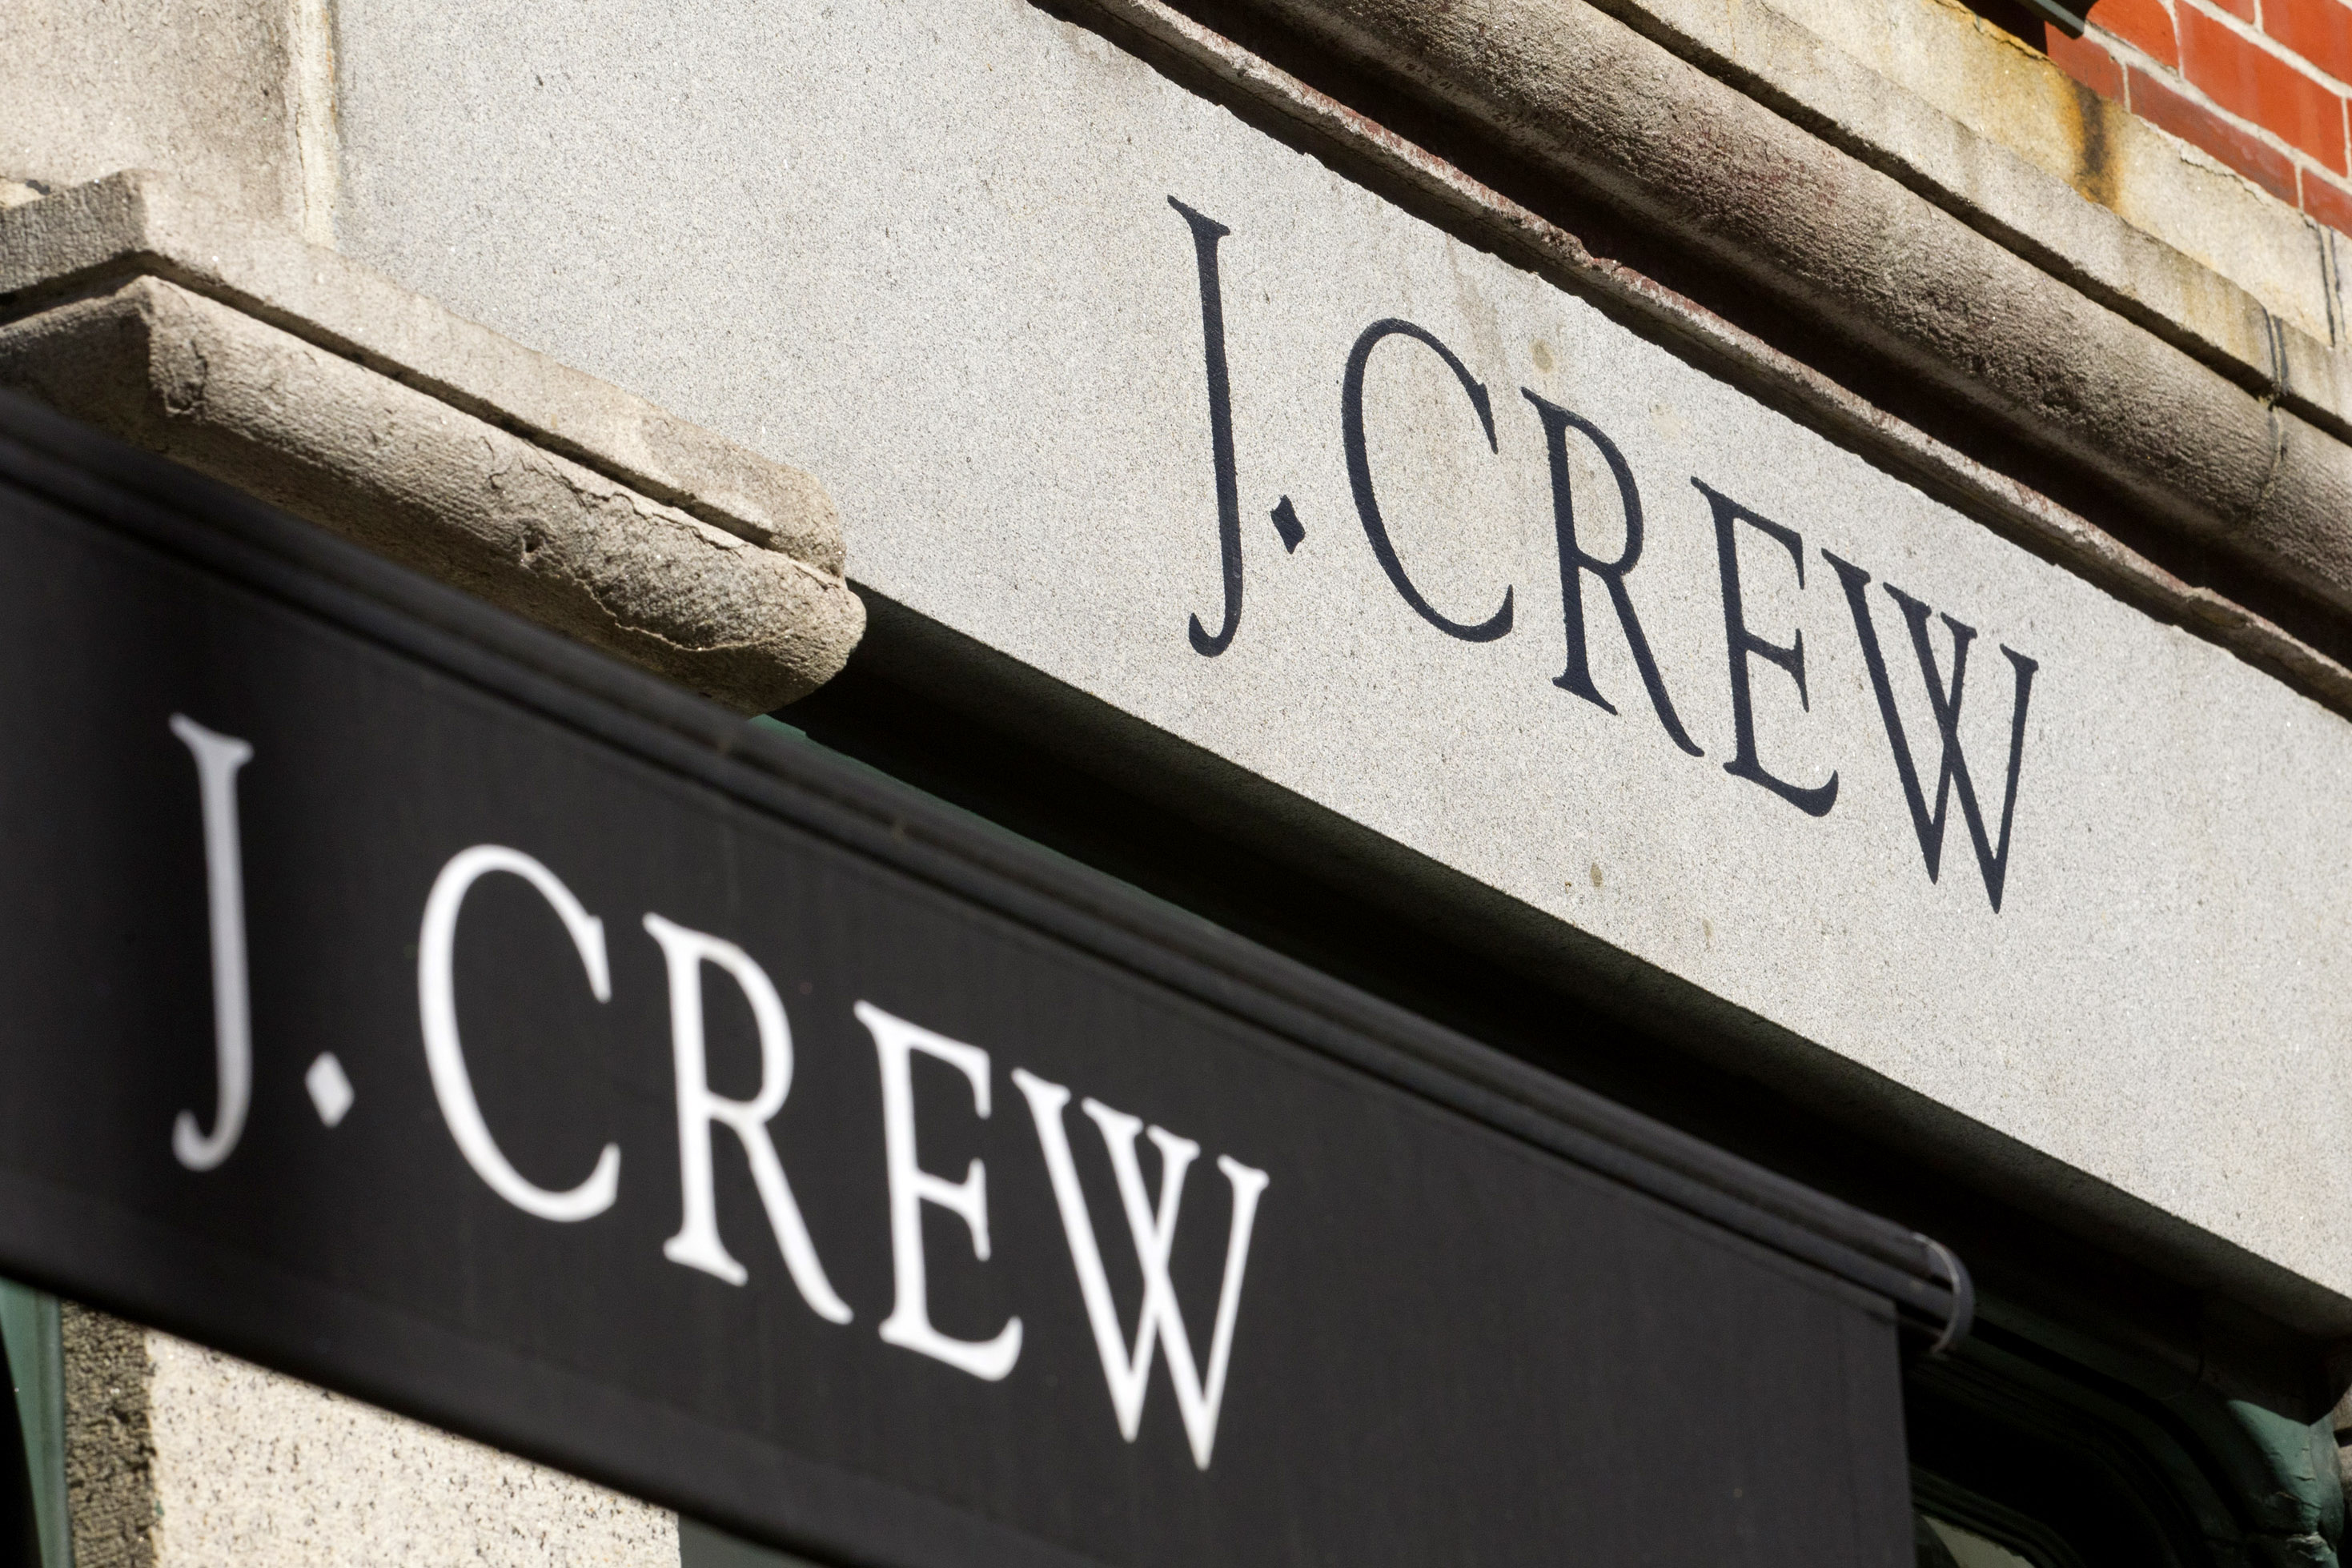 J. Crew Group Inc. signage is displayed outside of a retail store in New York on March 1, 2011.